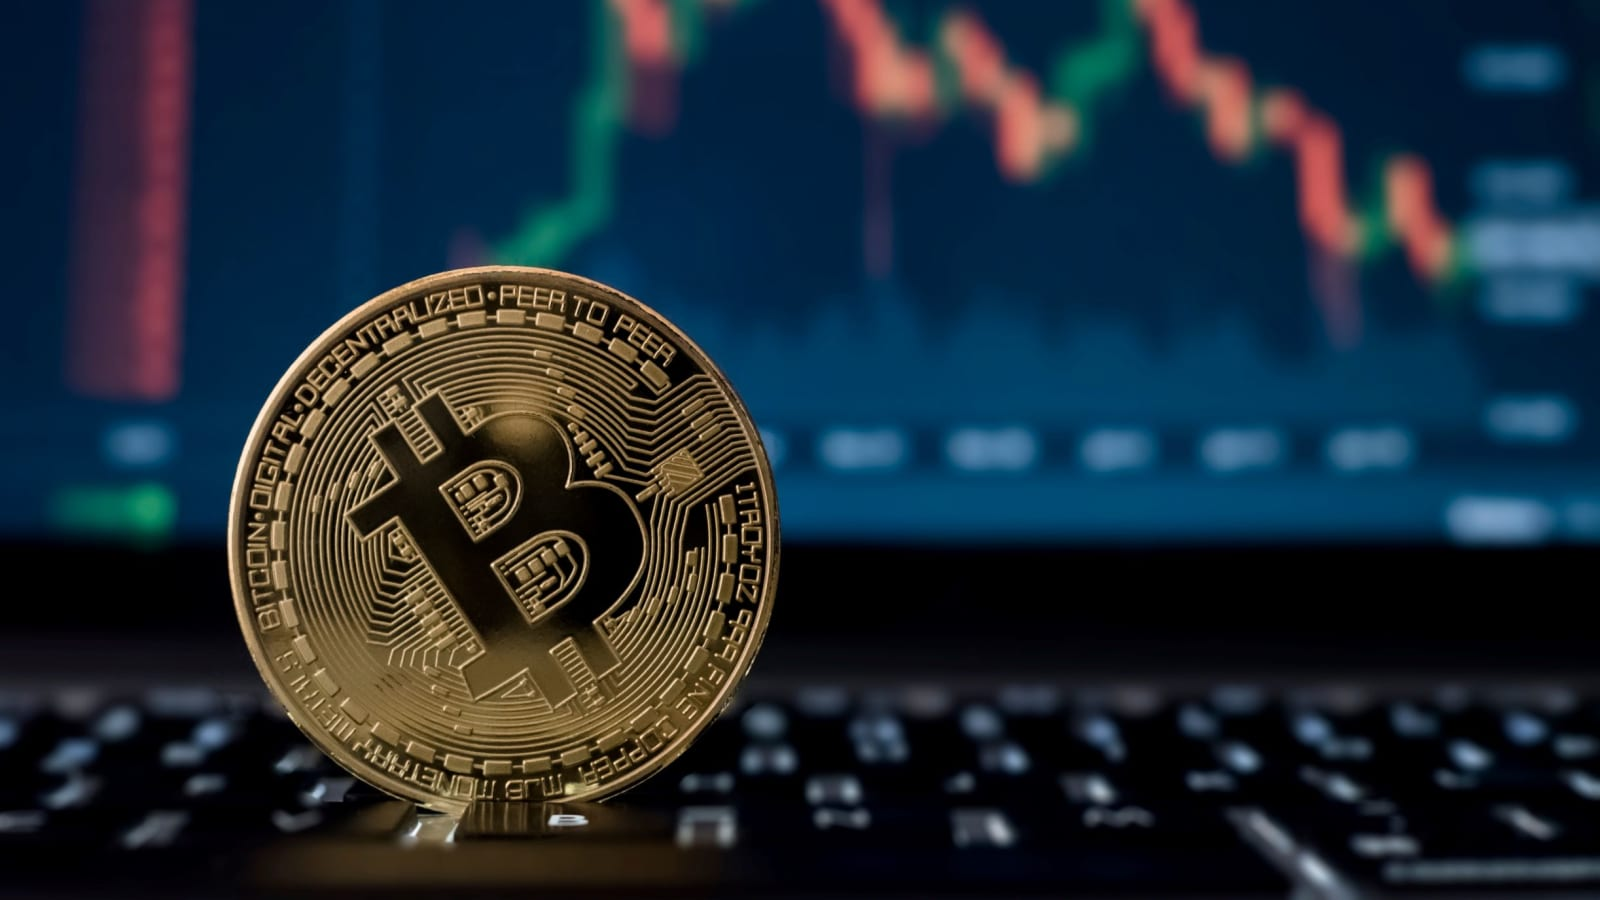 Crypto news: Senate's infrastructure bill proposal, record NFT trading